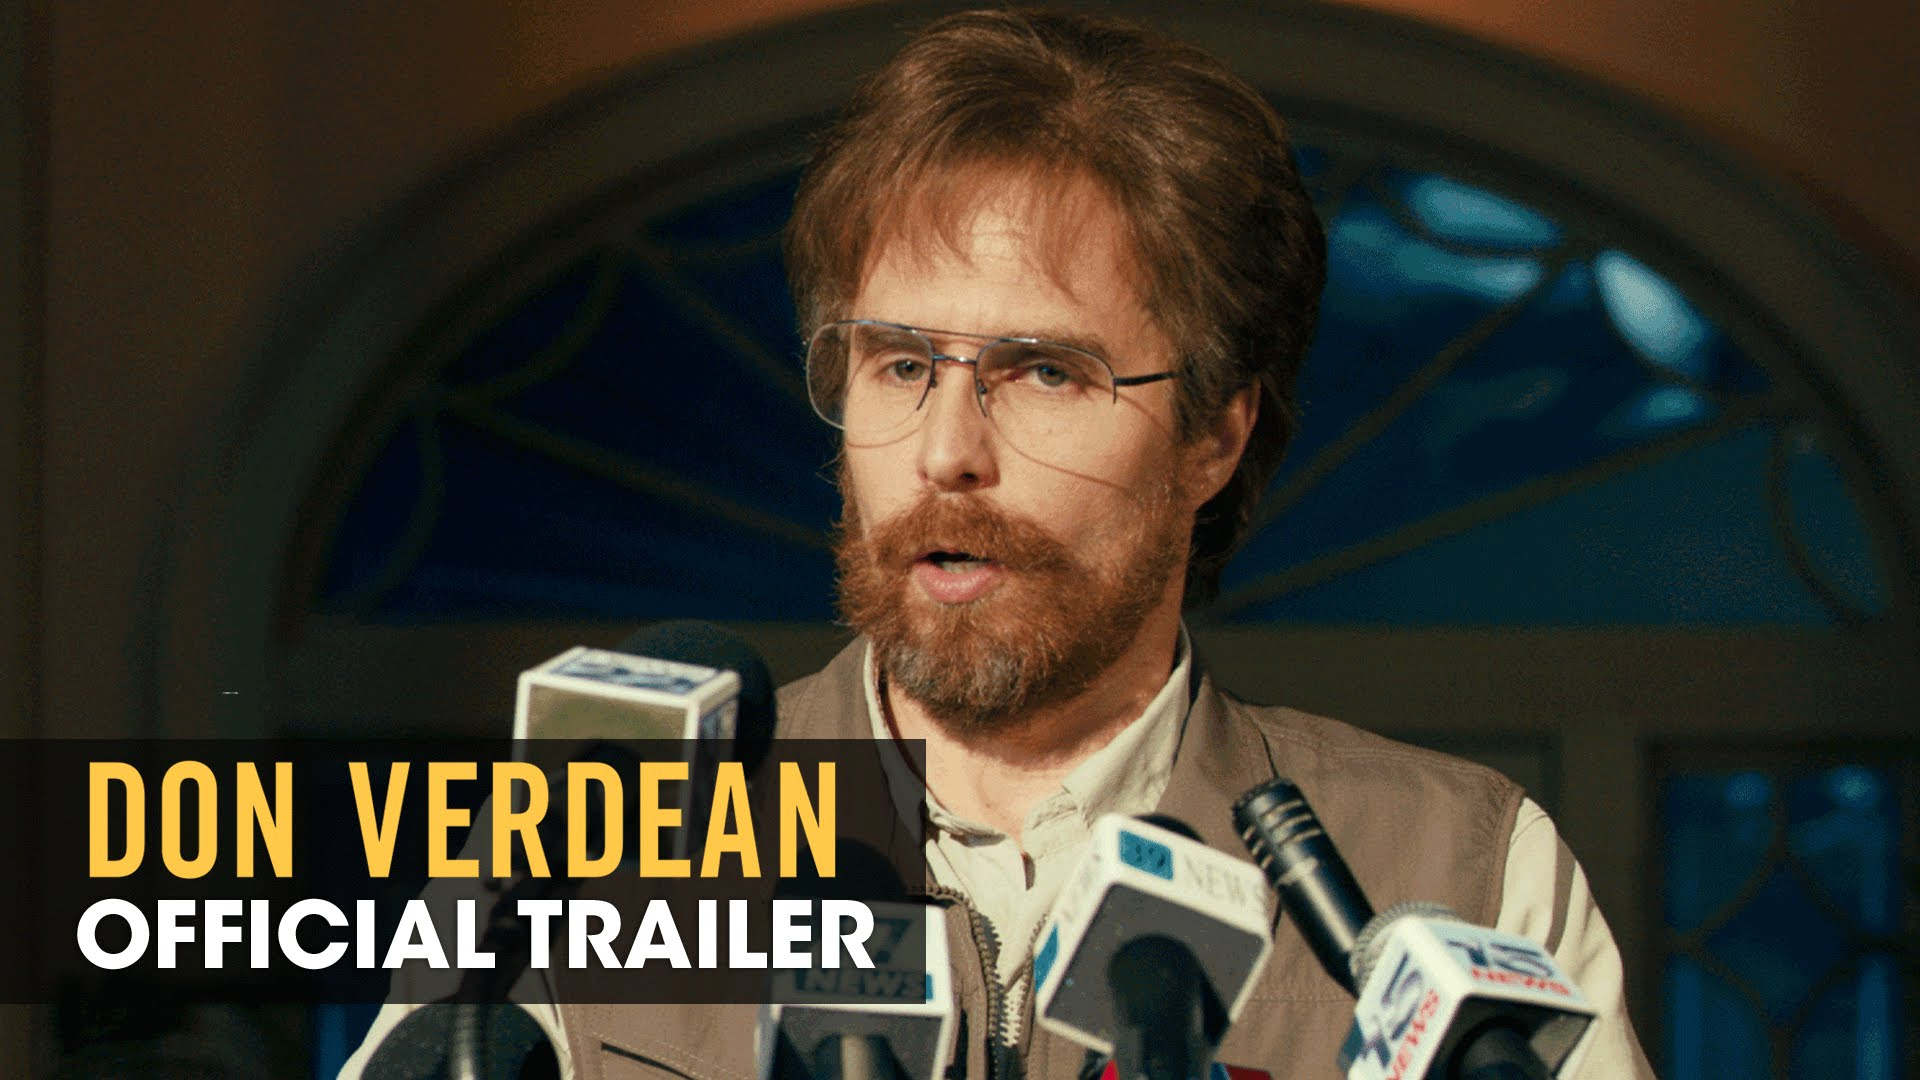 DON VERDEAN (2015 Movie – Directed by Jared Hess, Starring Sam Rockwell) – Official Trailer